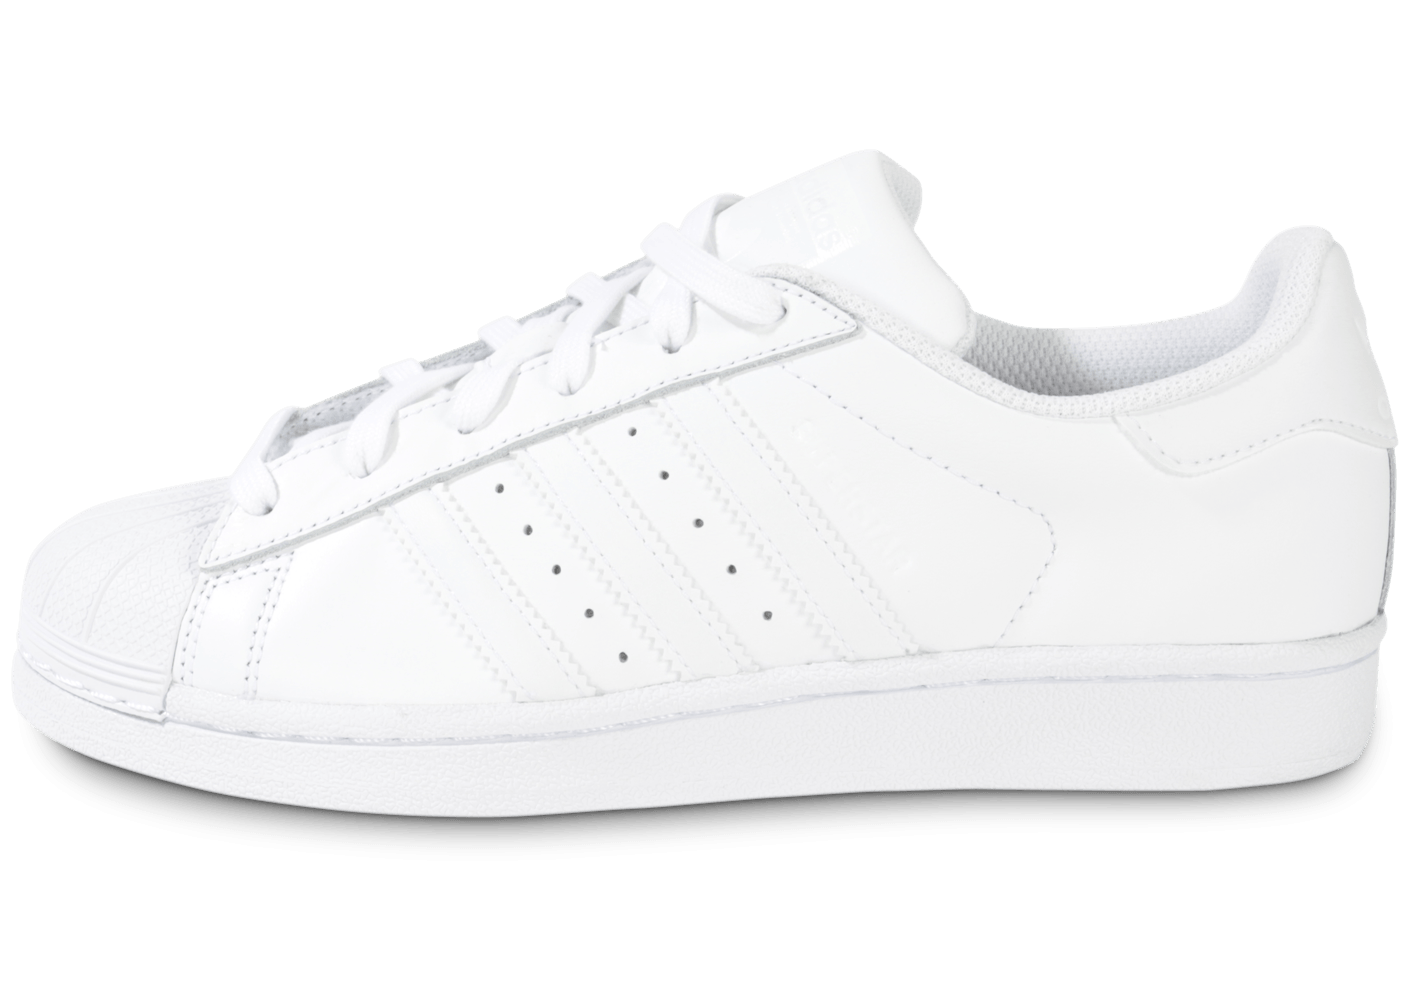 adidas Superstar Foundation junior blanche - Chaussures adidas - Chausport